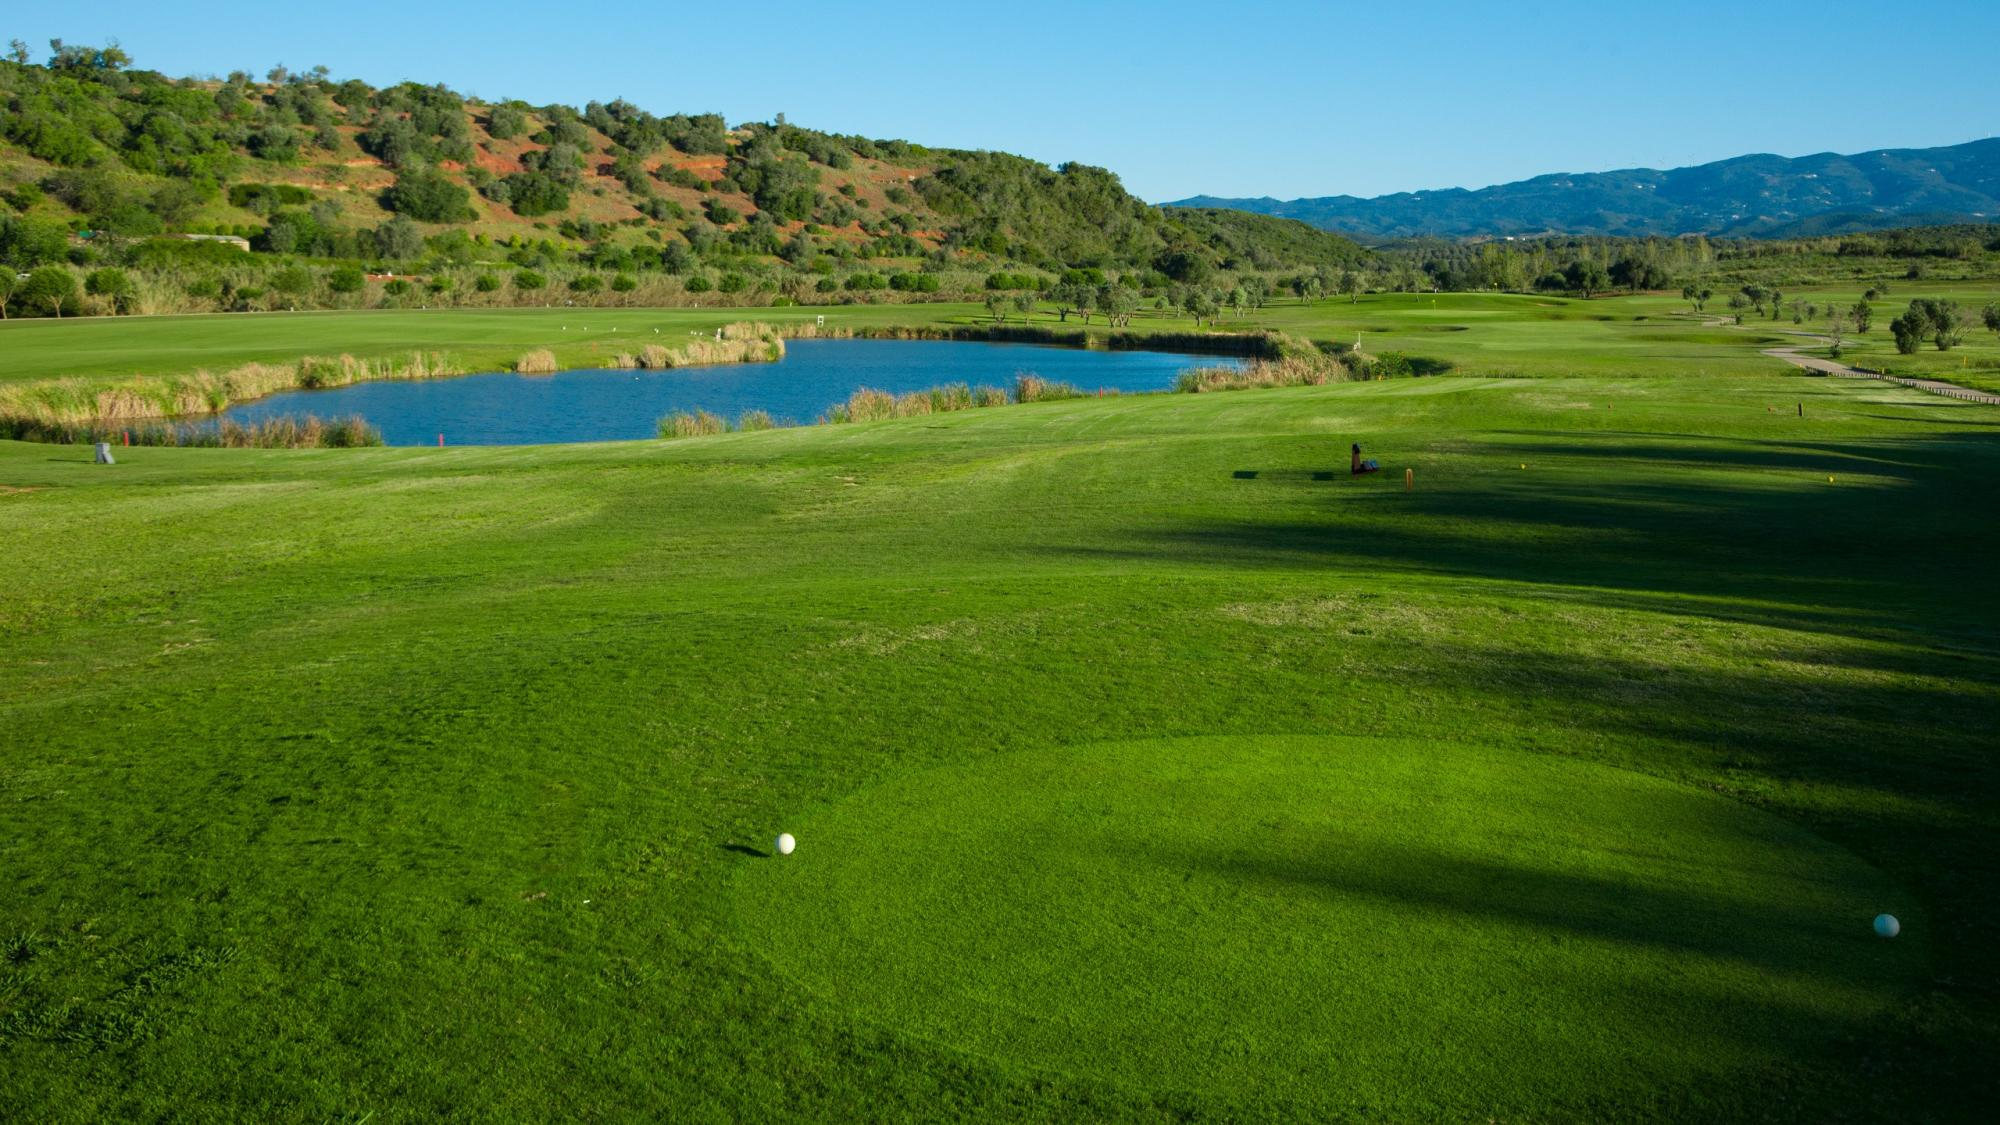 Alamos Golf Course features several of the top holes within Algarve